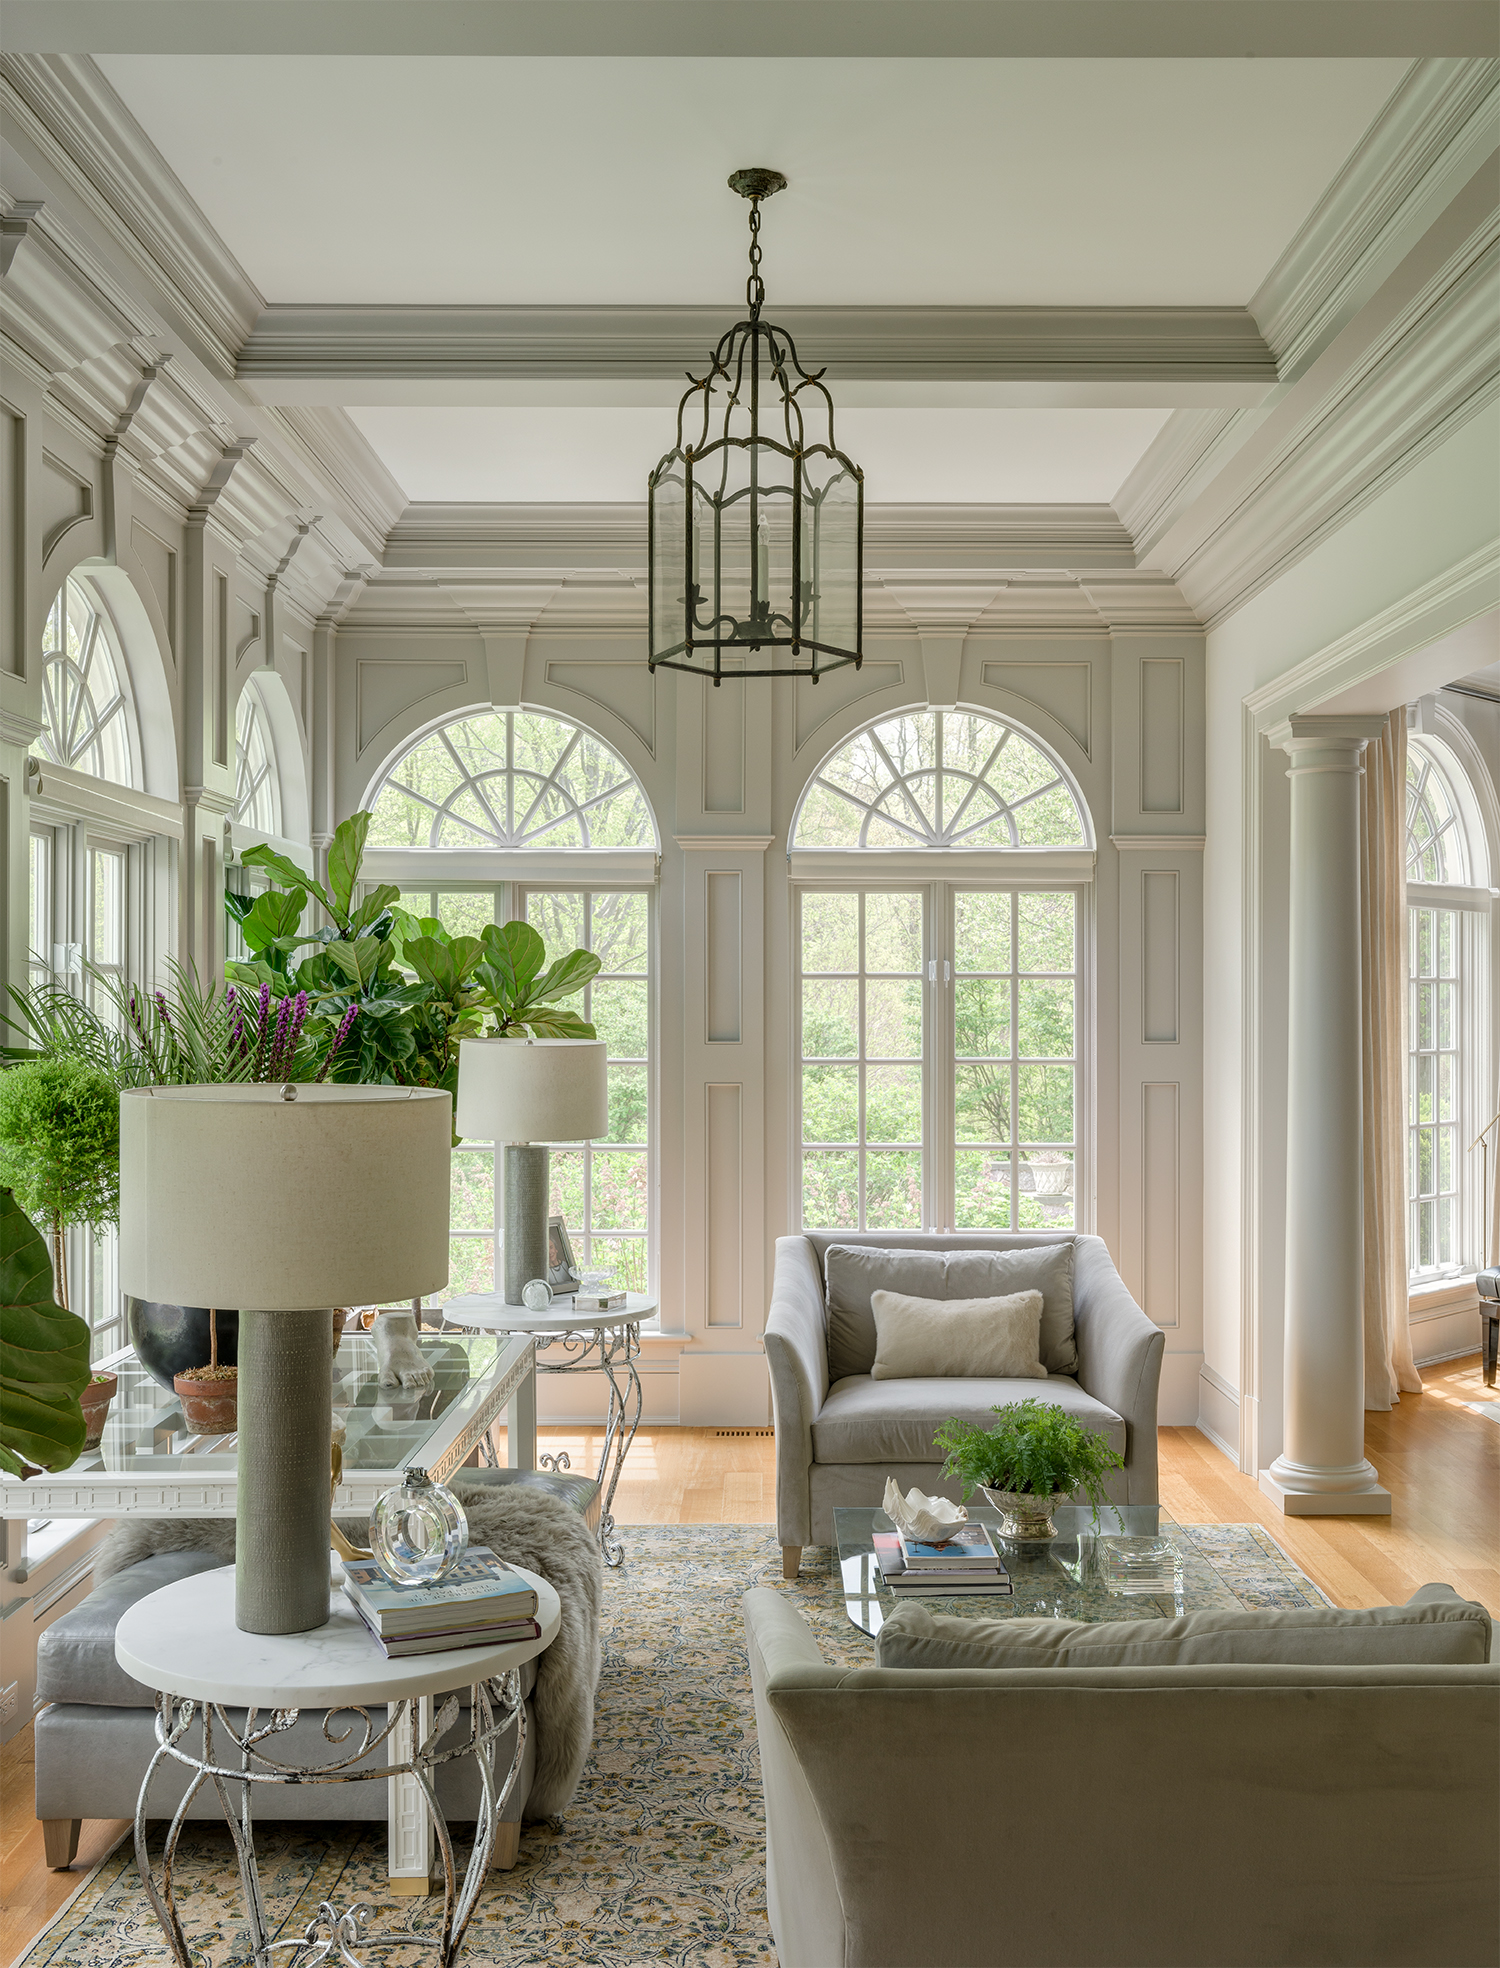 An inviting sunroom mixes plants with plush upholstery in tonal grays. by Shelley Morris Interiors